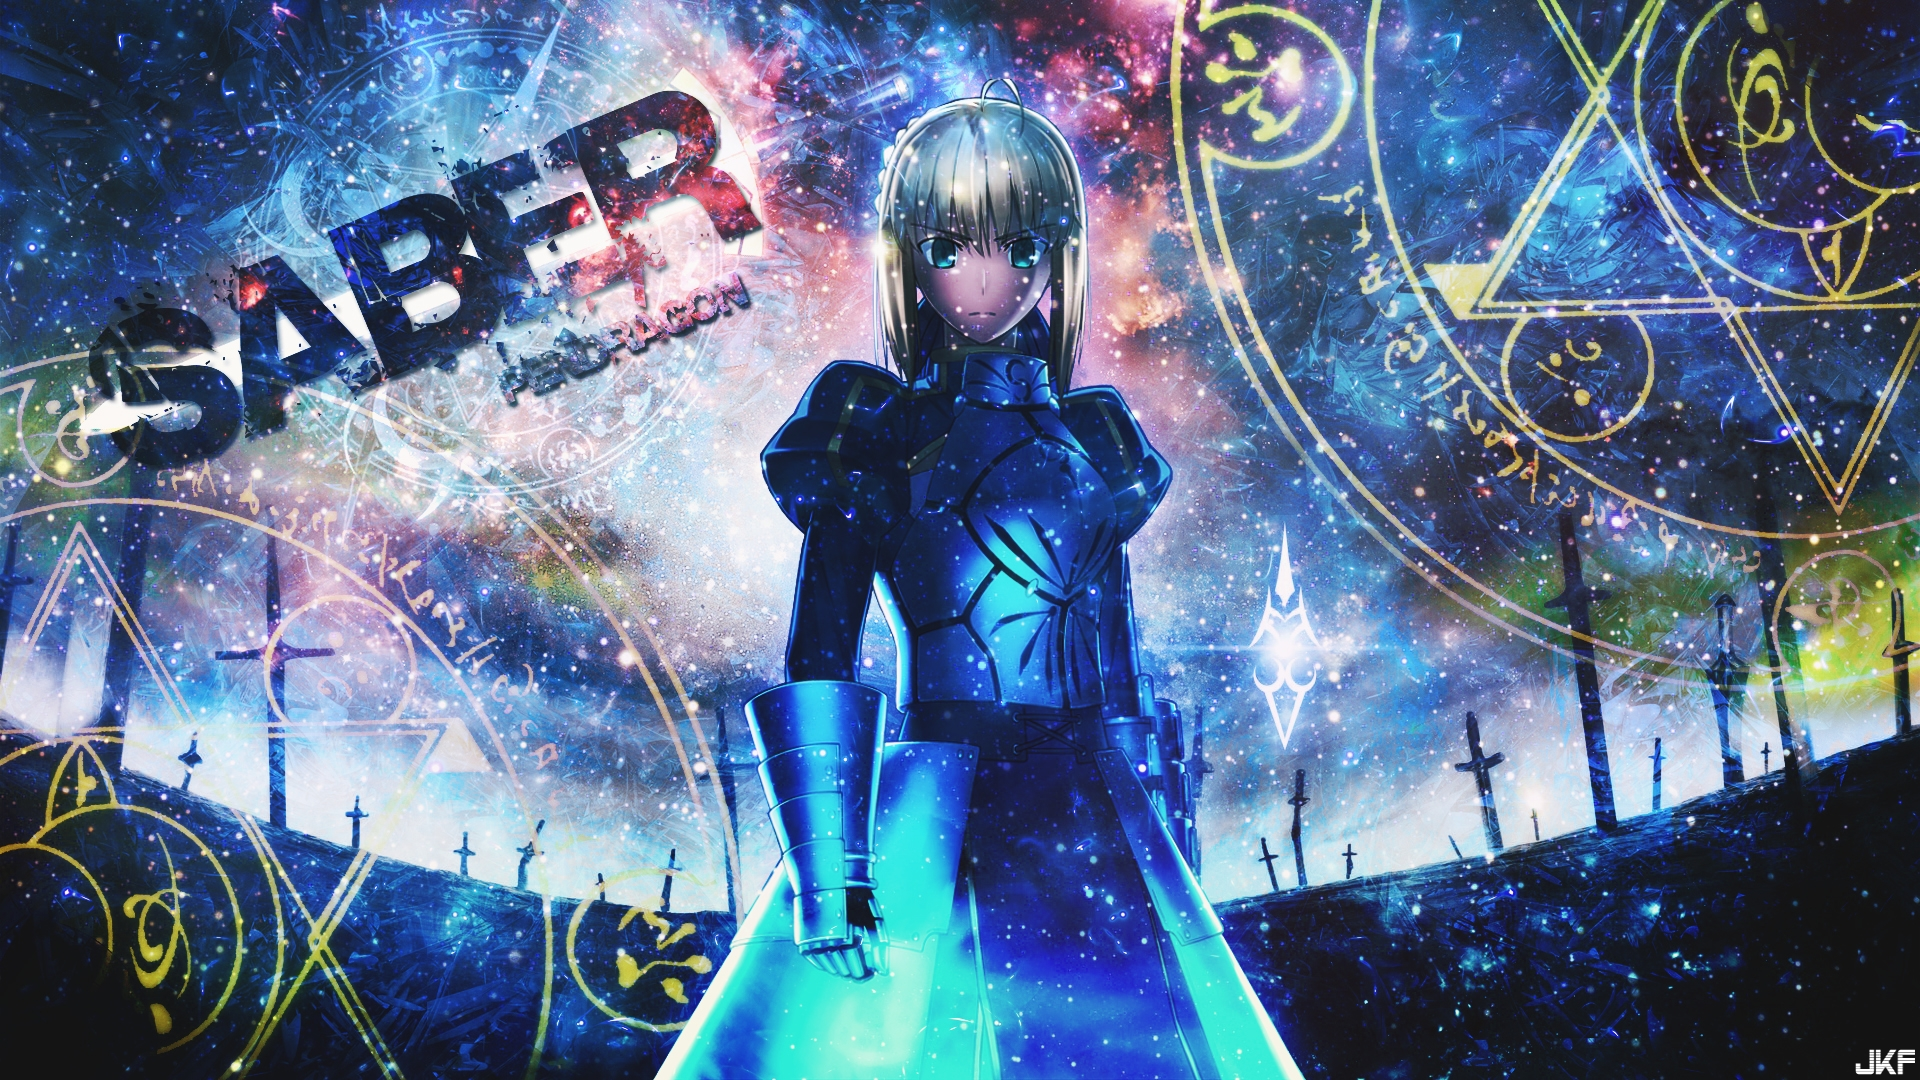 saber_wallpaper_4_by_dinocojv-d8xik3p.jpg